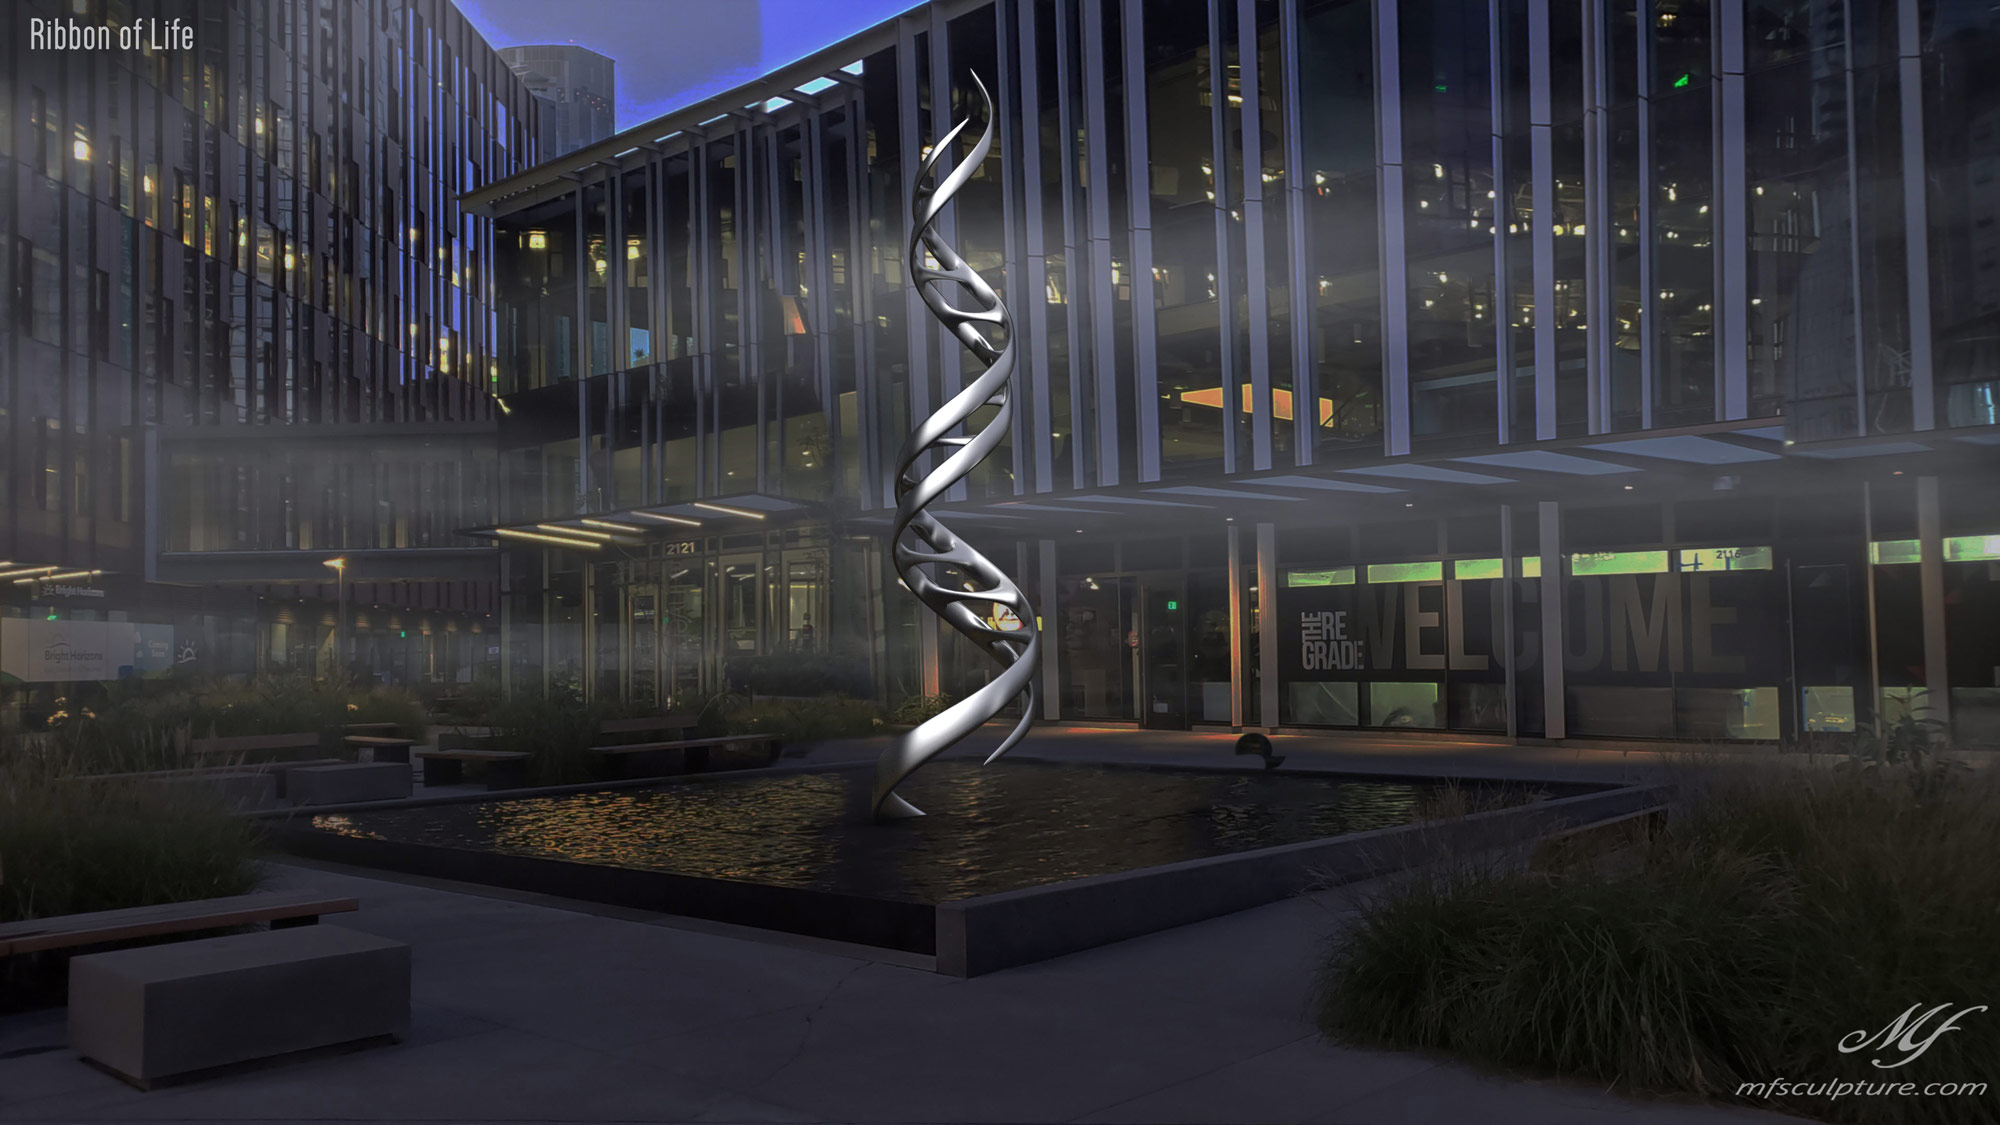 DNA Double Helix Sculpture Contemporary Biology 1